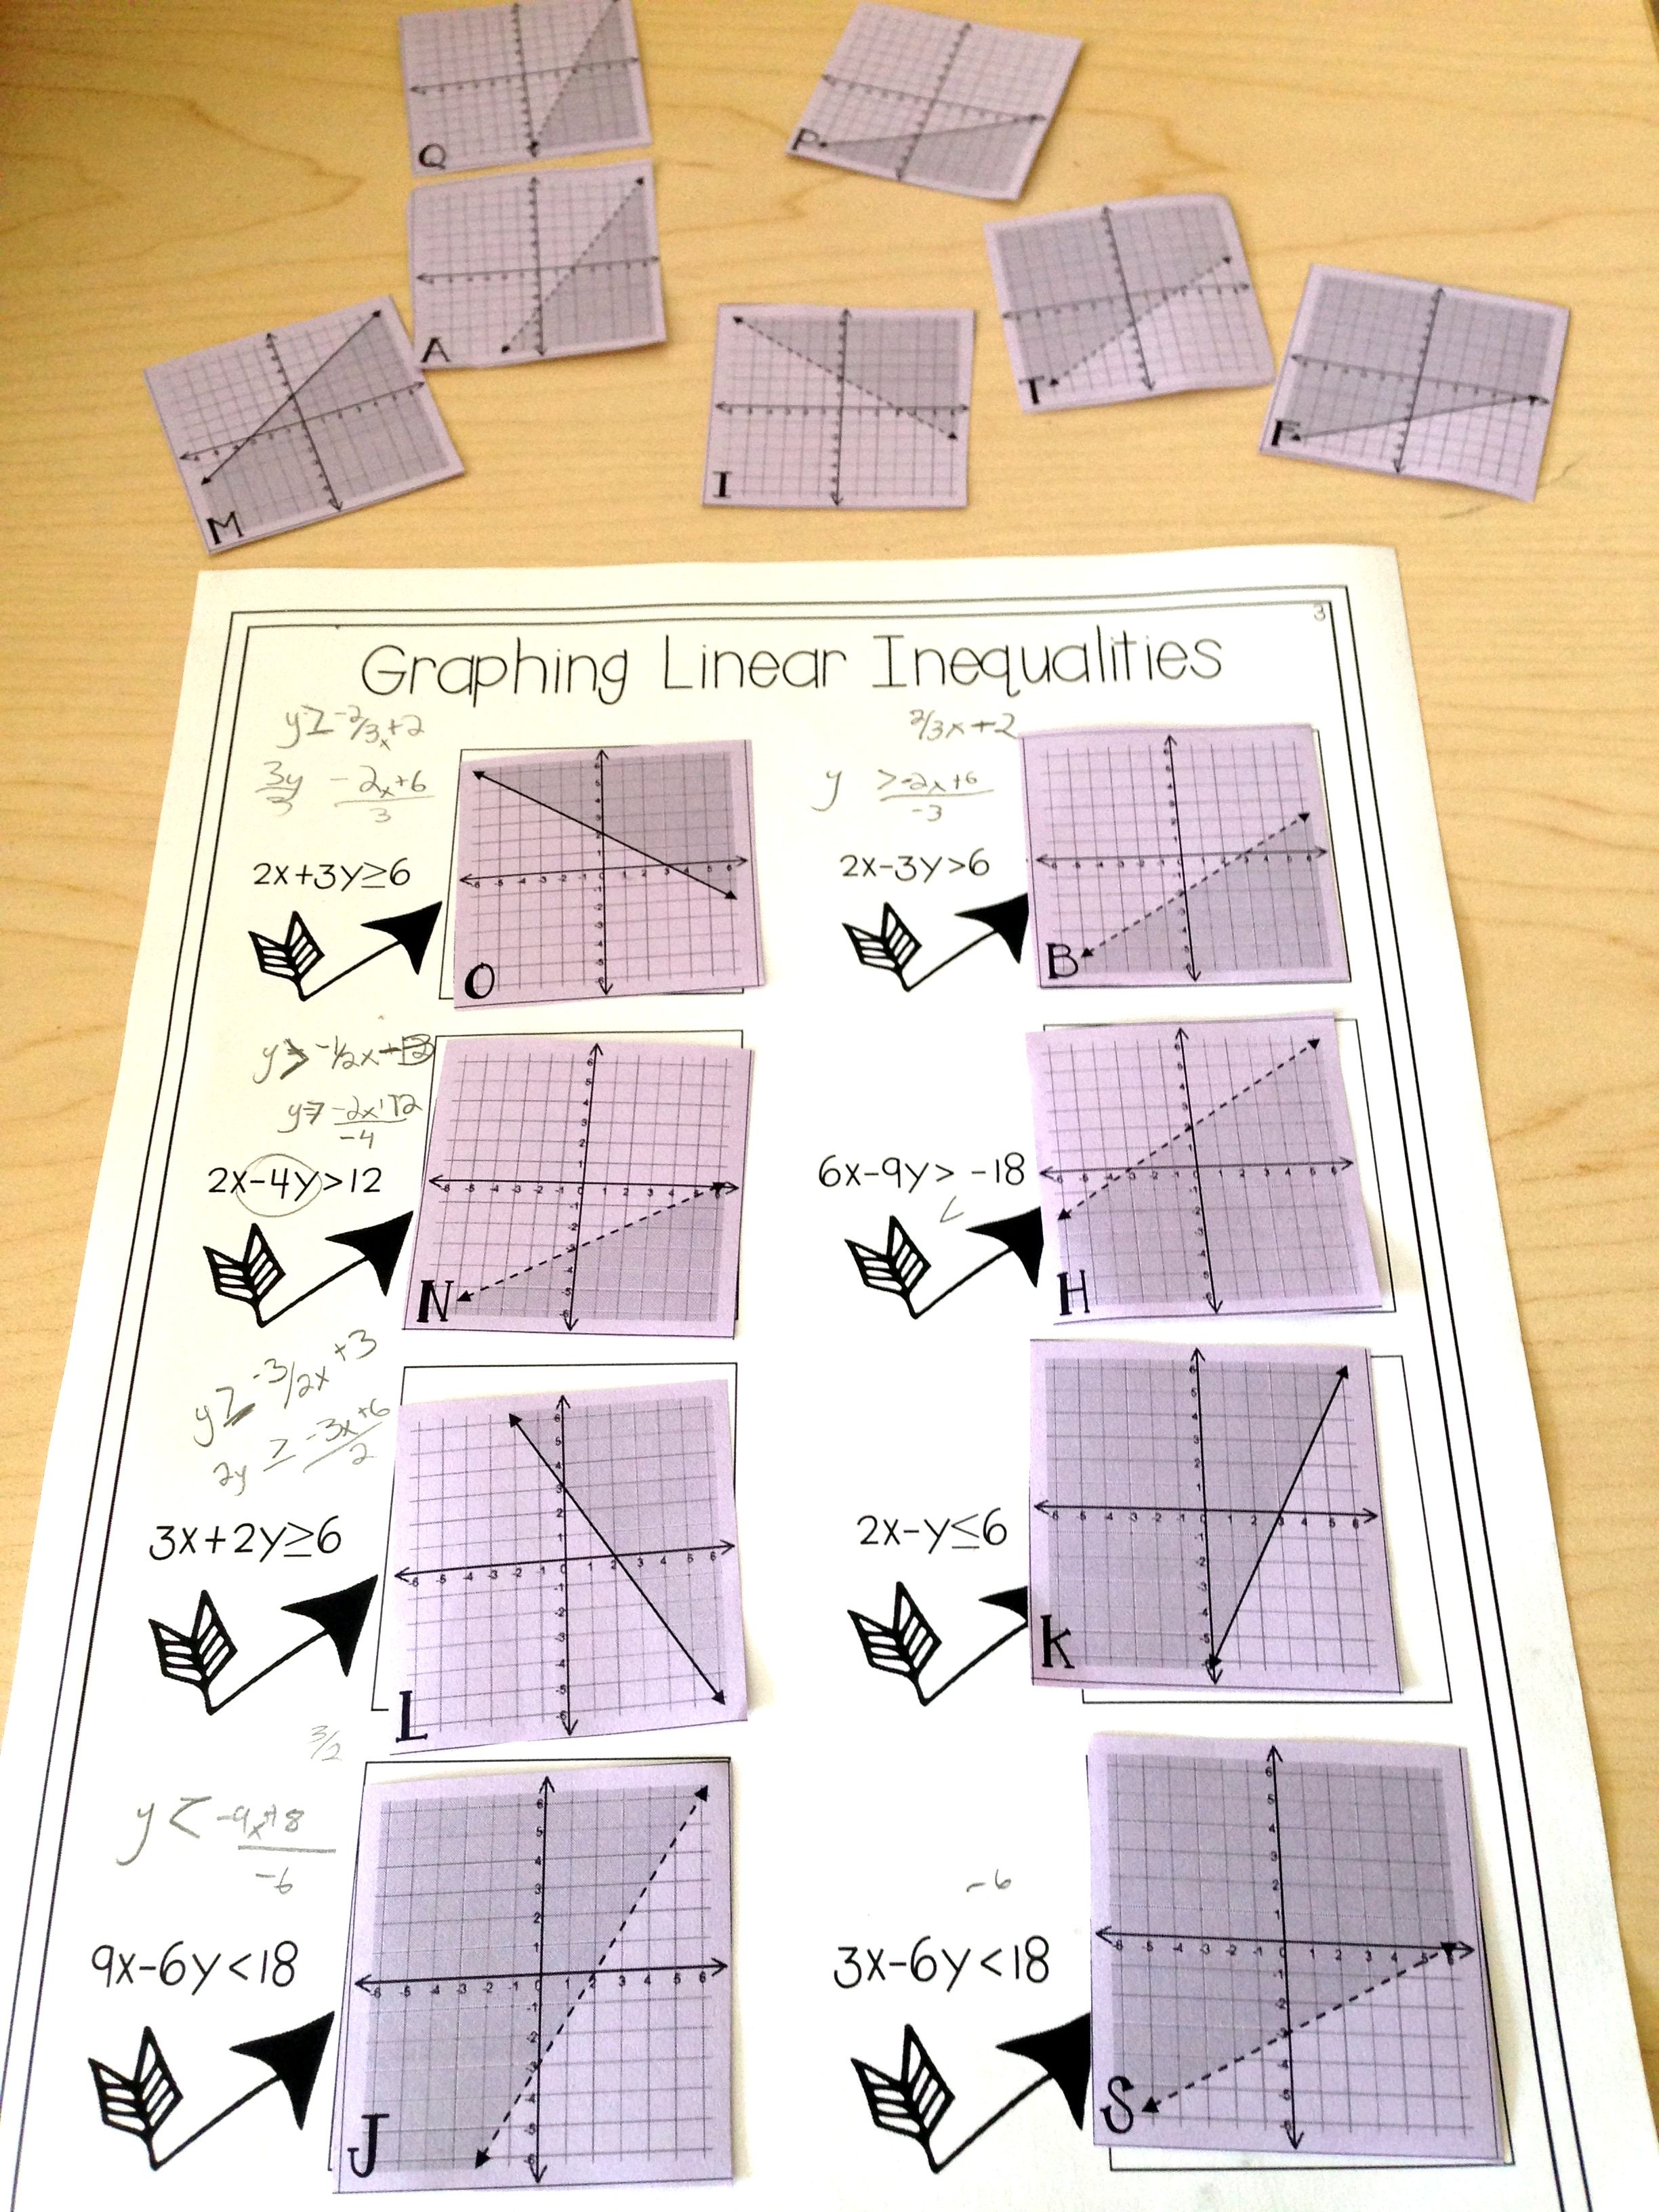 Graphing Linear Inequalities Card Match Activity Graphing Linear Inequalities Linear Inequalities Graphing Inequalities